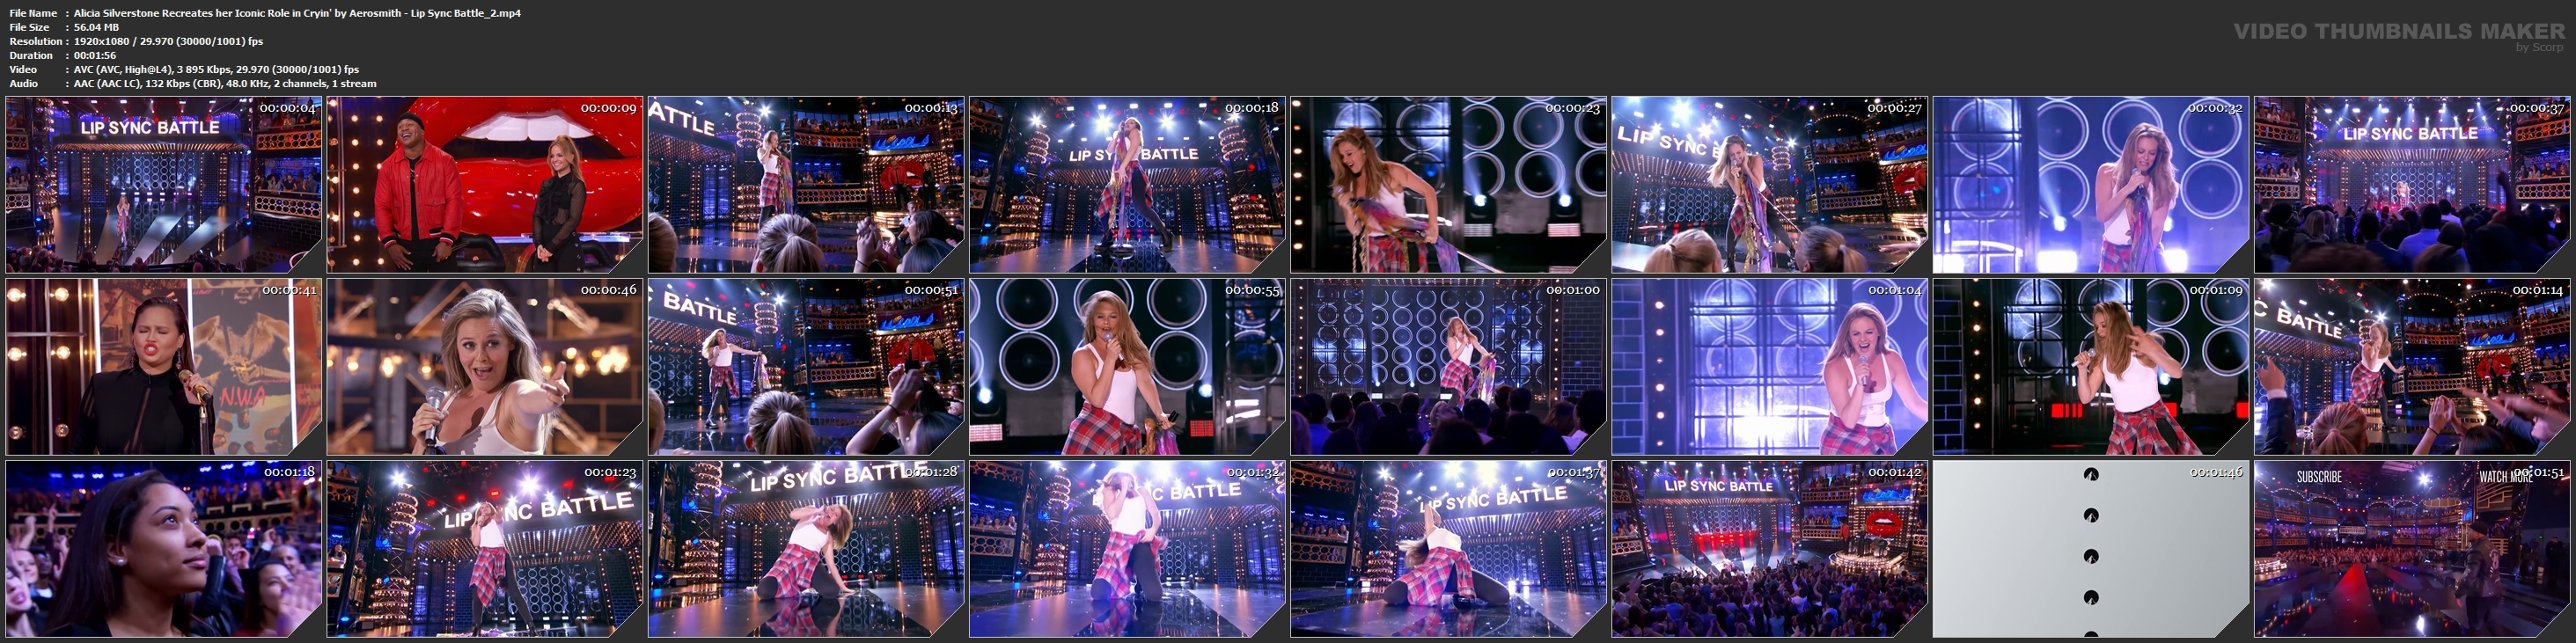 Alicia Silverstone Recreates her Iconic Role in Cryin' by Aerosmith - Lip Sync Battle_2.mp4 (2).jpg